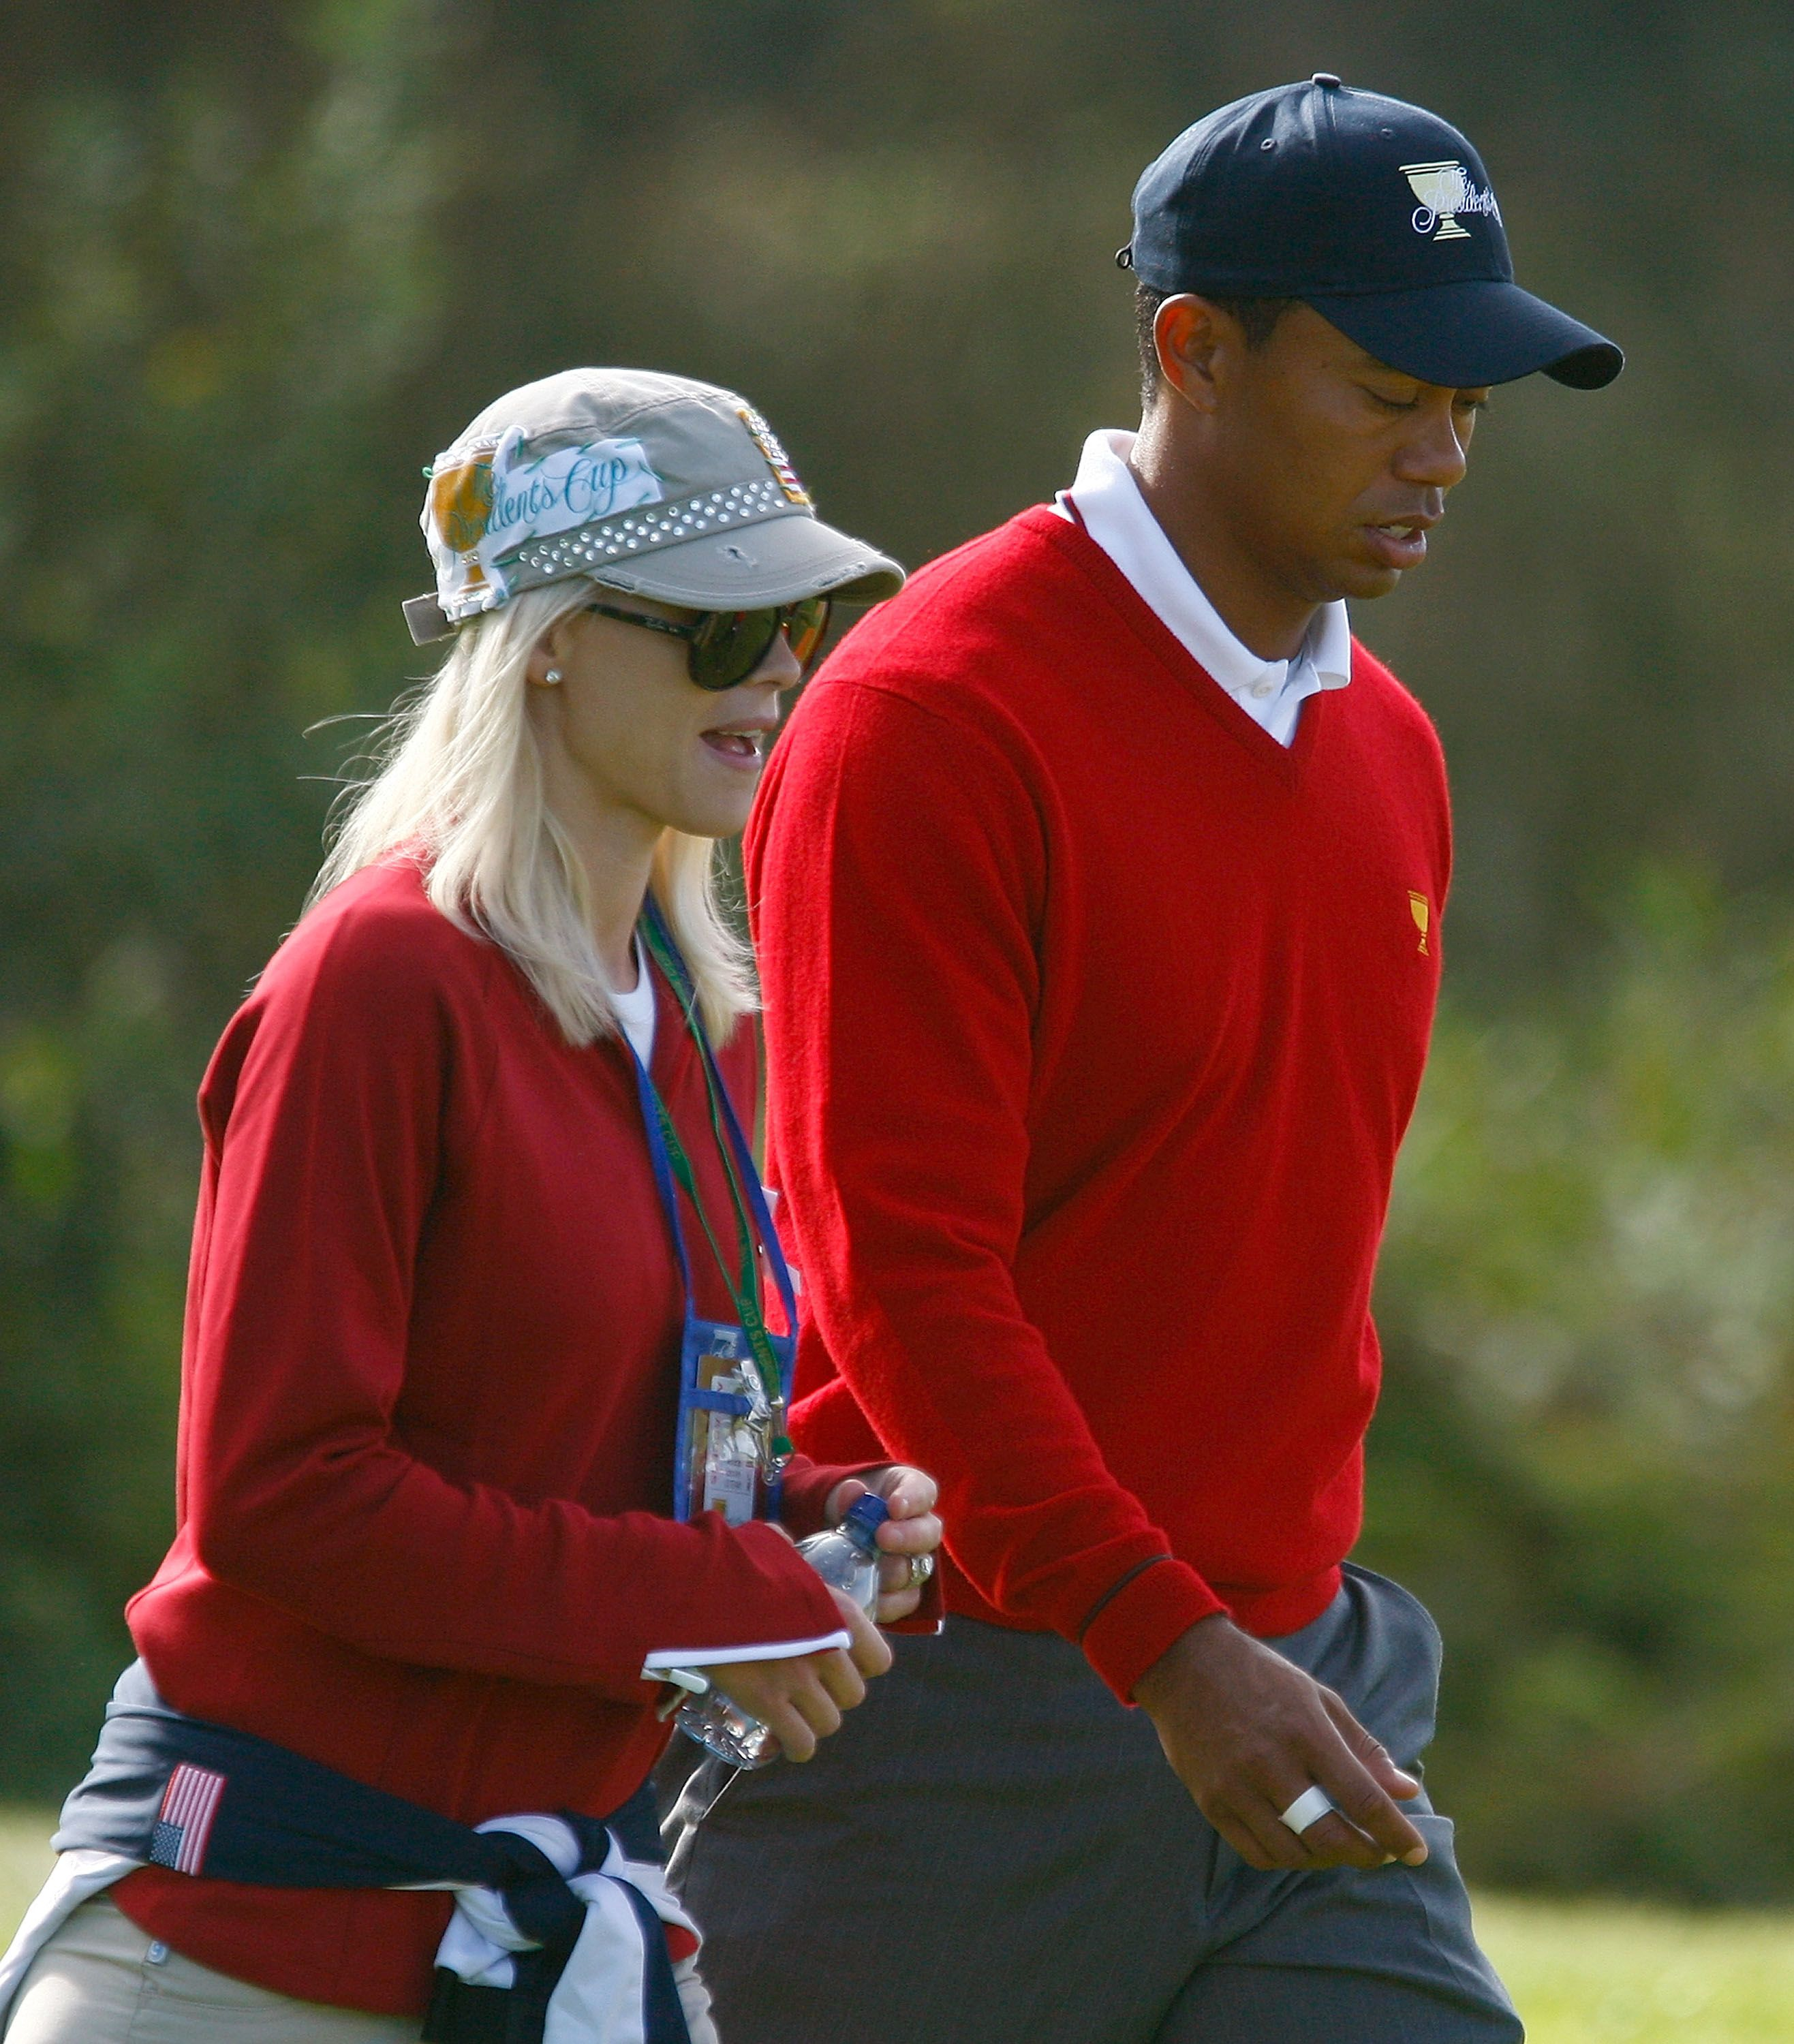 Tiger Woods and Elin Nordegren during the Day One Foursome Matches of The Presidents Cup at Harding Park Golf Course on October 8, 2009 in San Francisco, California. | Source: Getty Imags